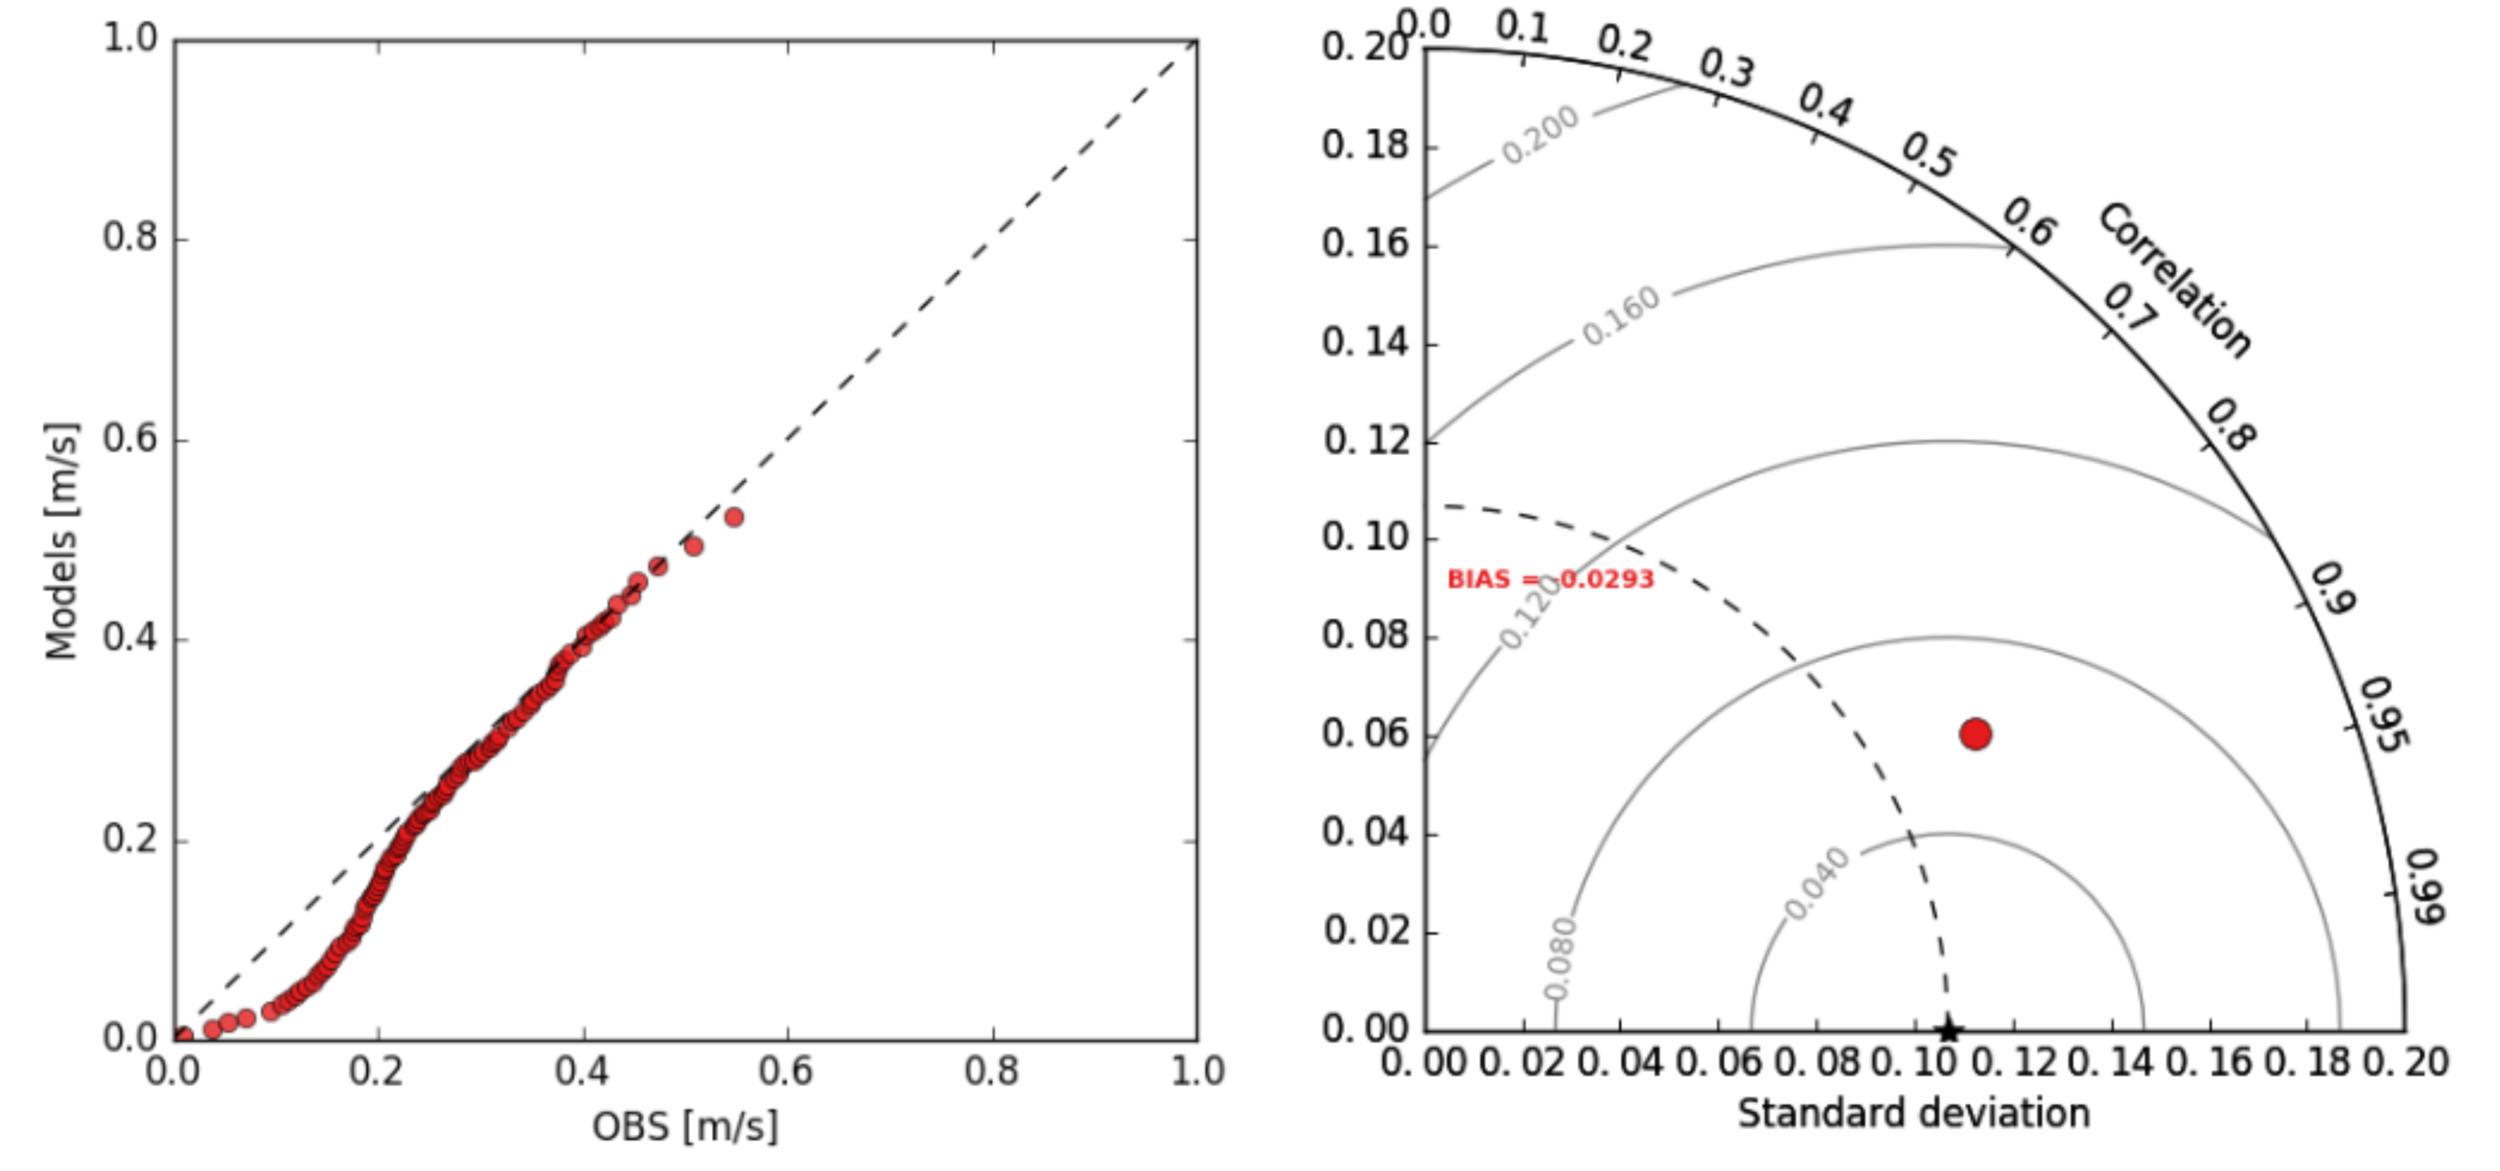 Left: QUANTILE-QUANTILE PLOT OF CURRENT SPEED AT 23.7 M BELOW SEA LEVEL AT THE VALIDATION LOCATION. RIGHT: TAYLOR DIAGRAM OF CURRENT SPEED AT 23.7 M OF DEPTH. THE COMPARISON IS FOR THE PERIOD 23/06/2006 - 24/07/2006.